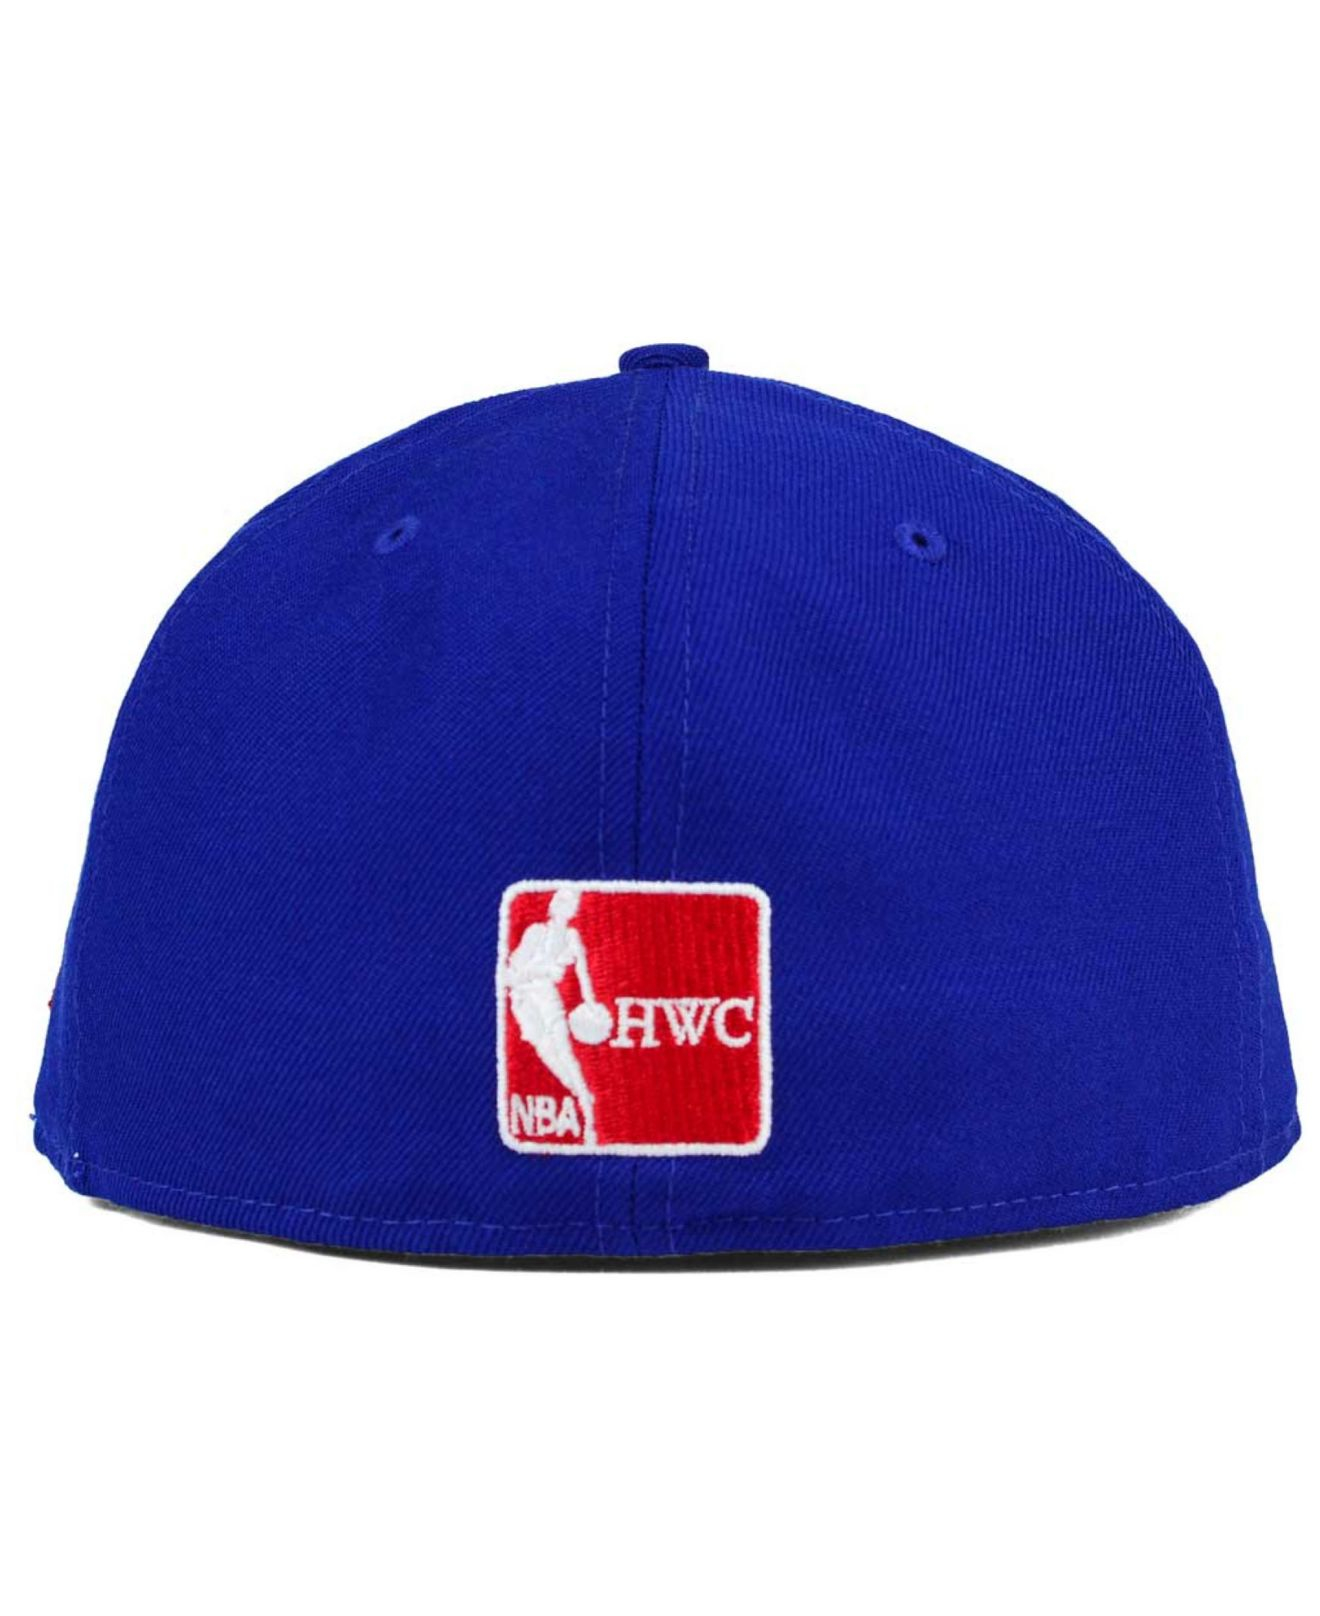 117c69fa2d2 ... discount code for lyst ktz detroit pistons classic wool 59fifty cap in  blue for men ff0e1